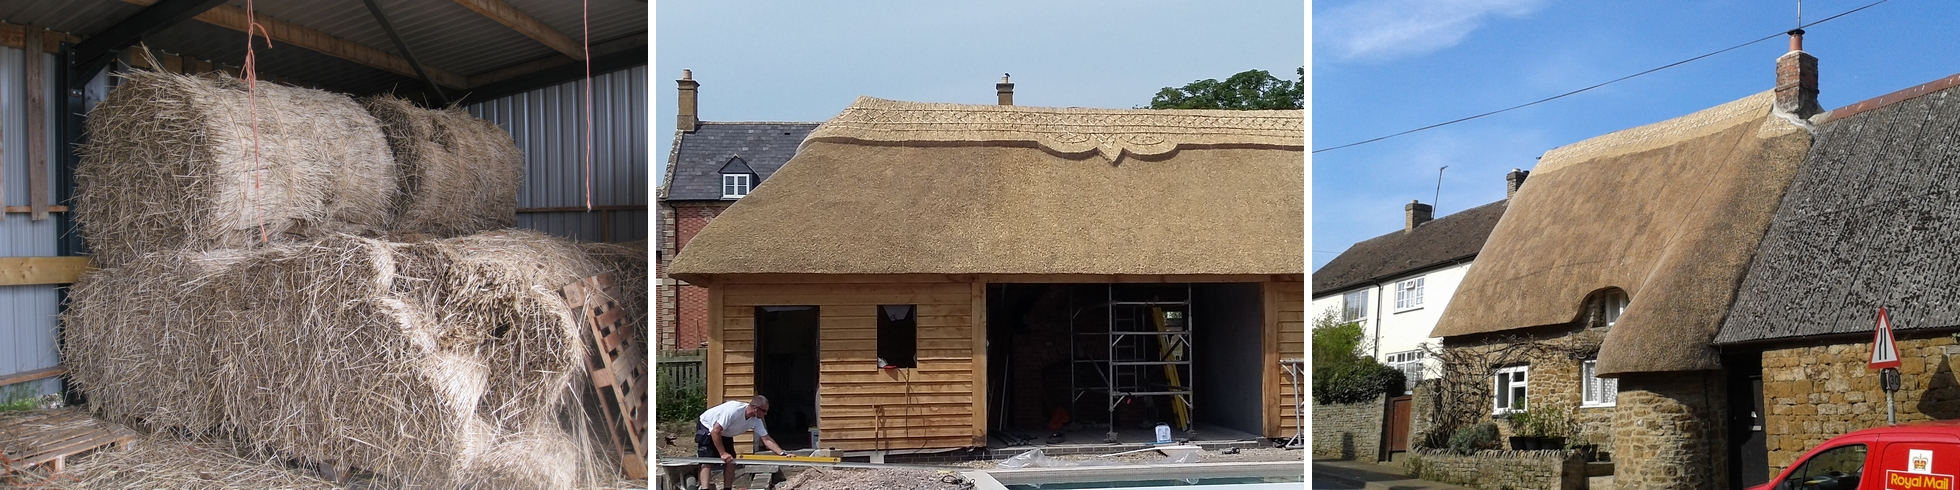 Before, during and after examples of Jem Raison's thatch craft in Warwickshire